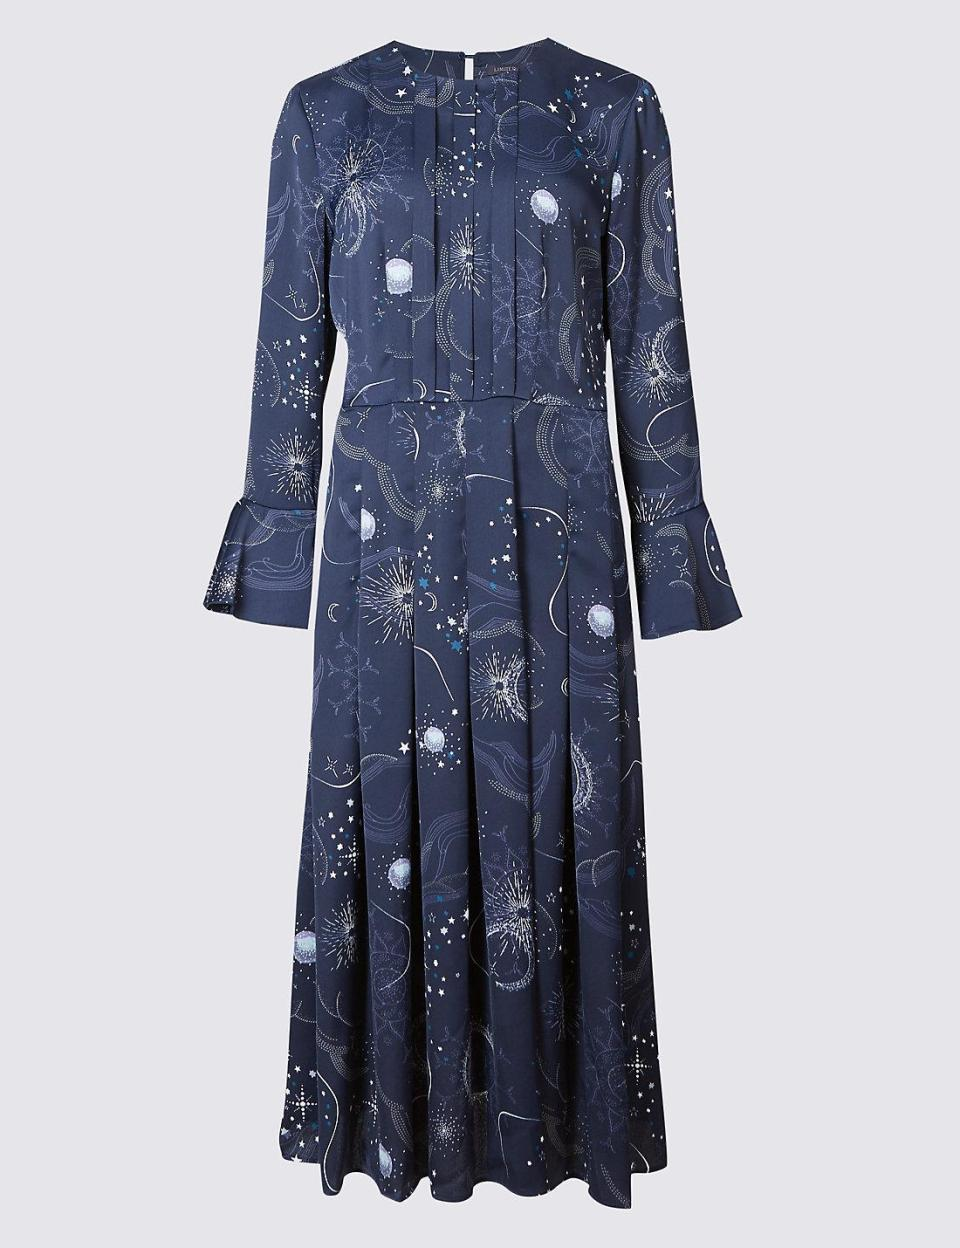 The galaxy dress is available online now in sizes six to 18